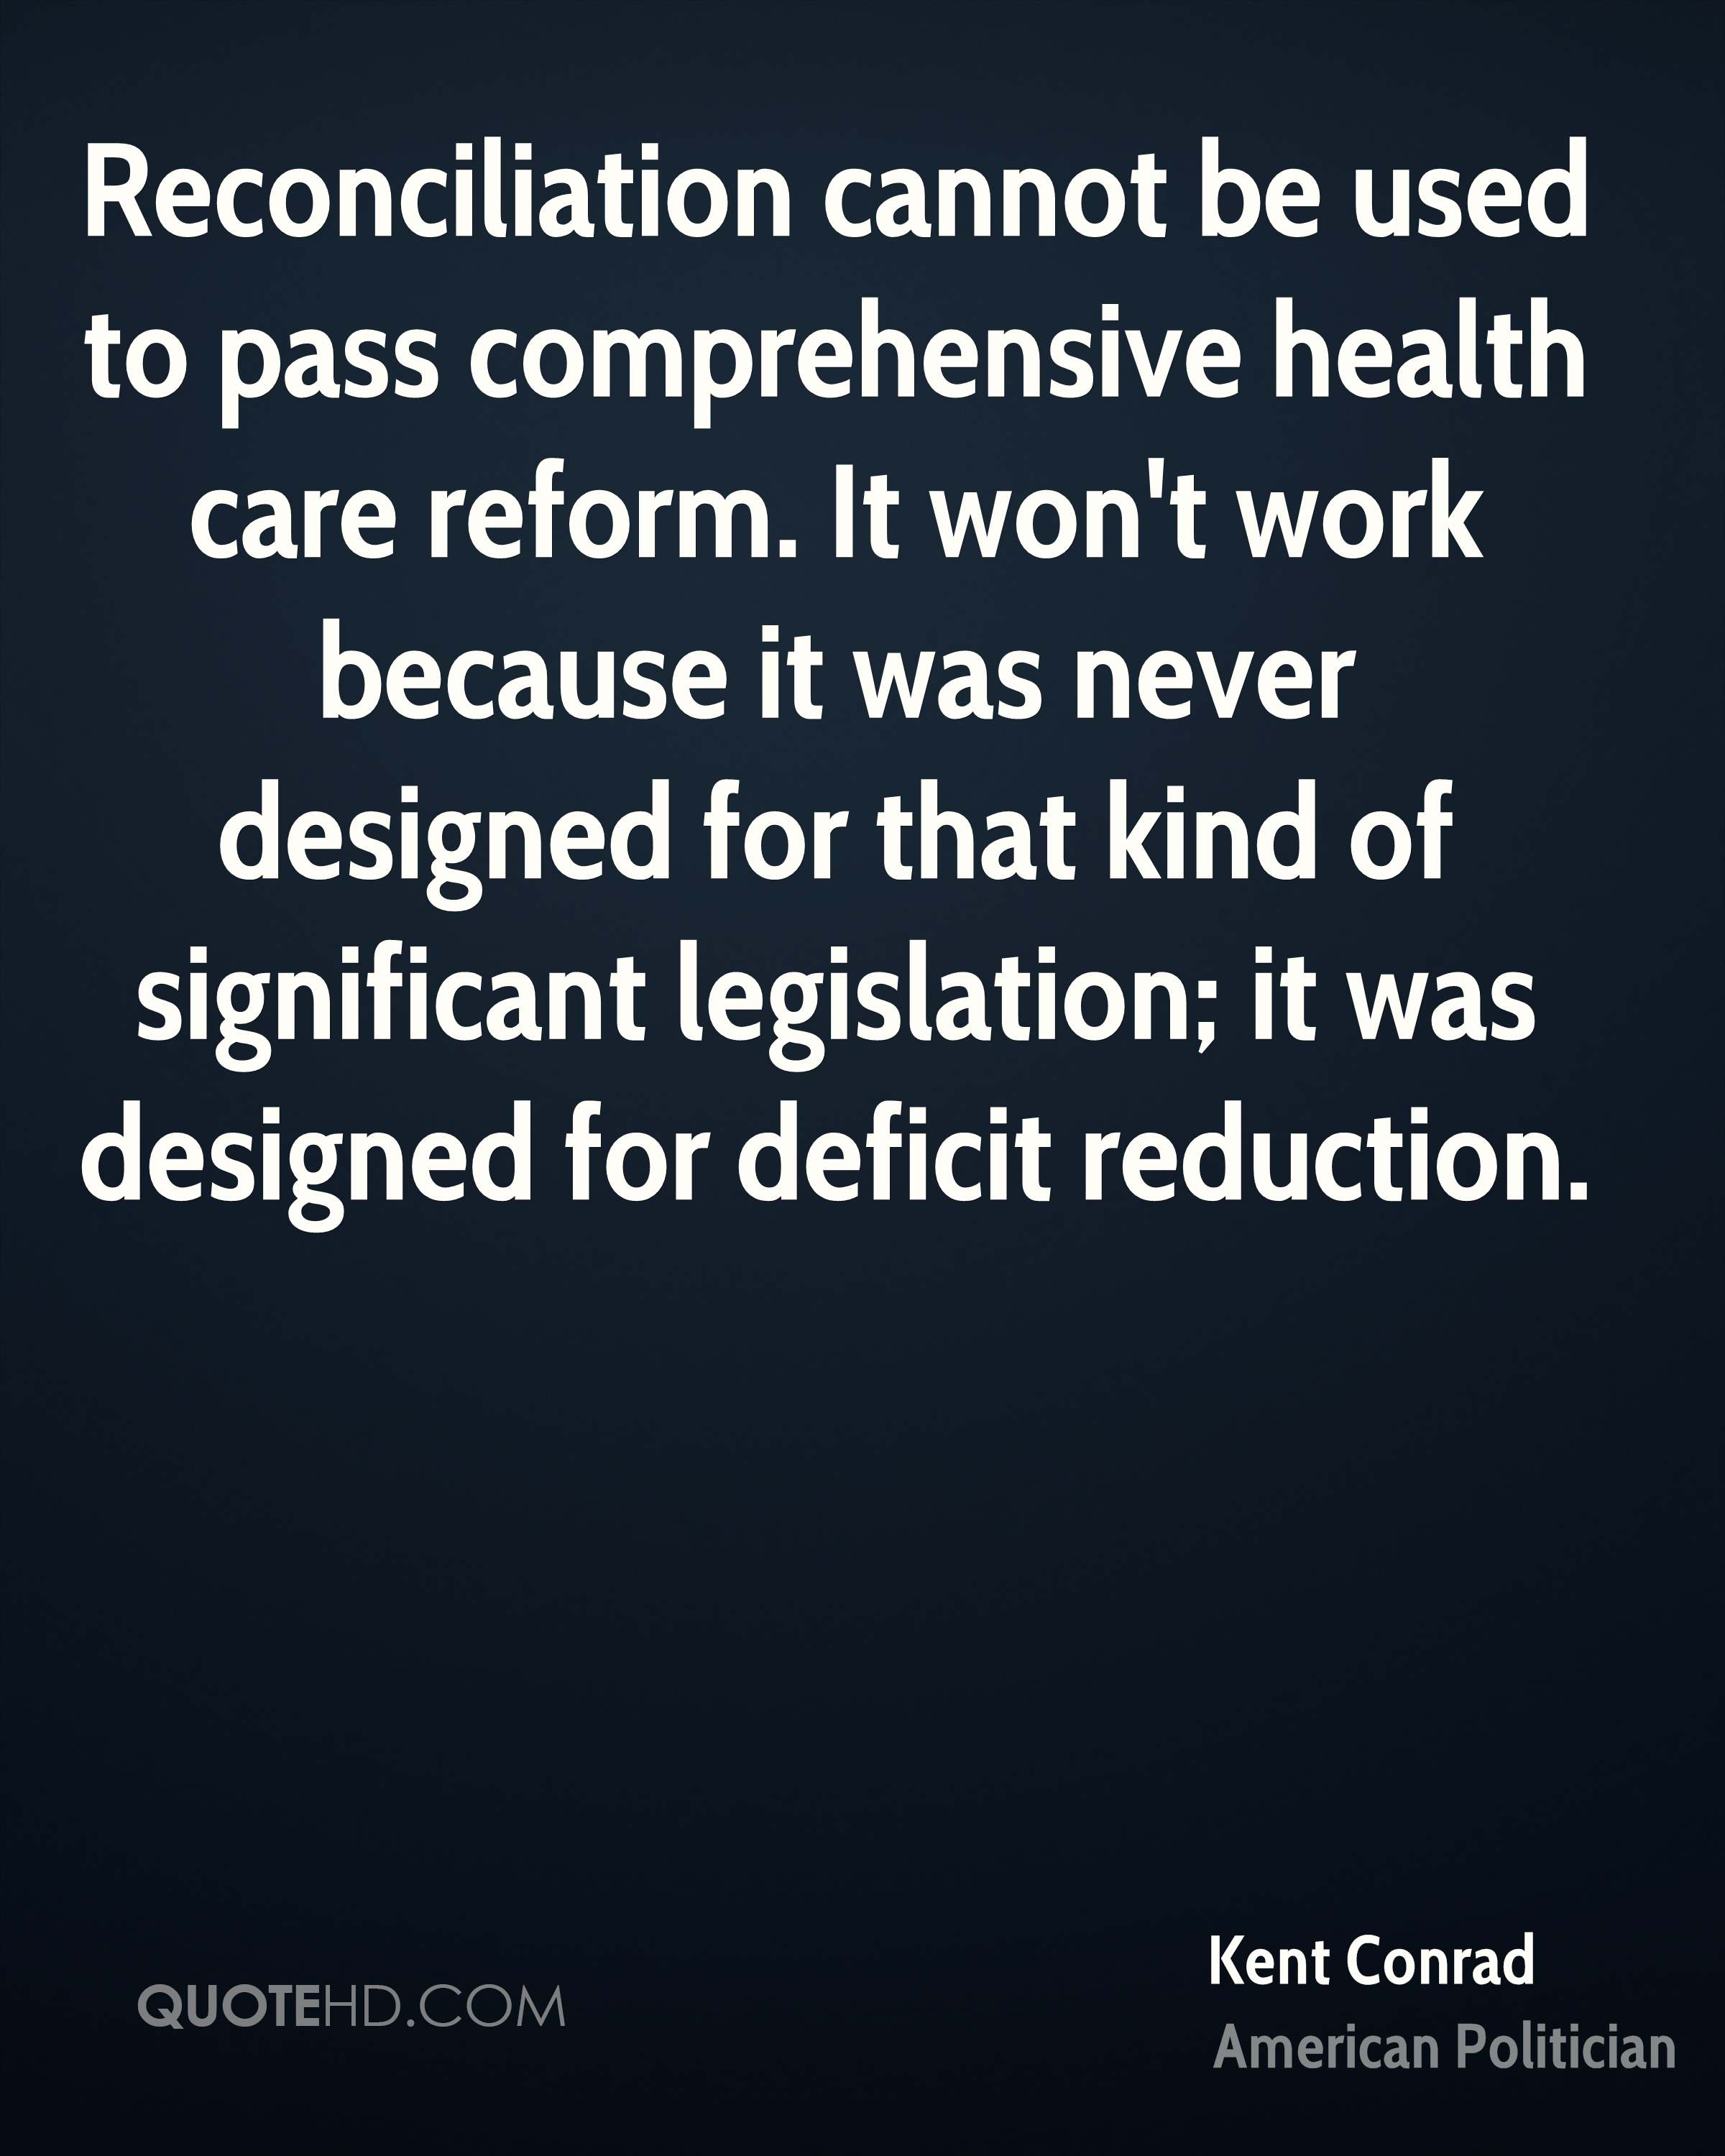 Reconciliation cannot be used to pass comprehensive health care reform. It won't work because it was never designed for that kind of significant legislation; it was designed for deficit reduction.